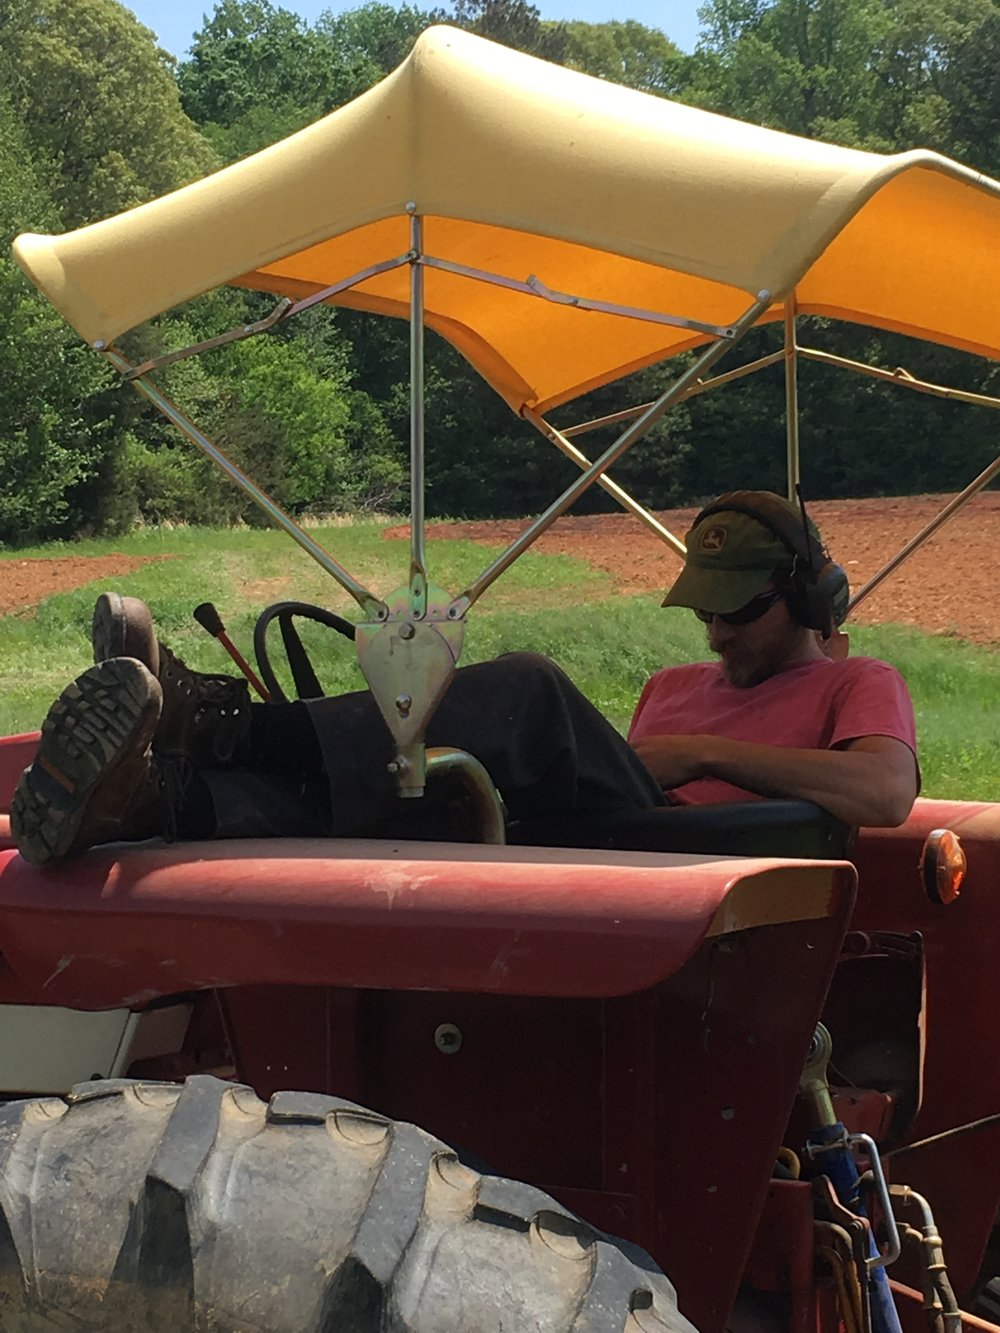 George taking a rest on the tractor, July, 2018